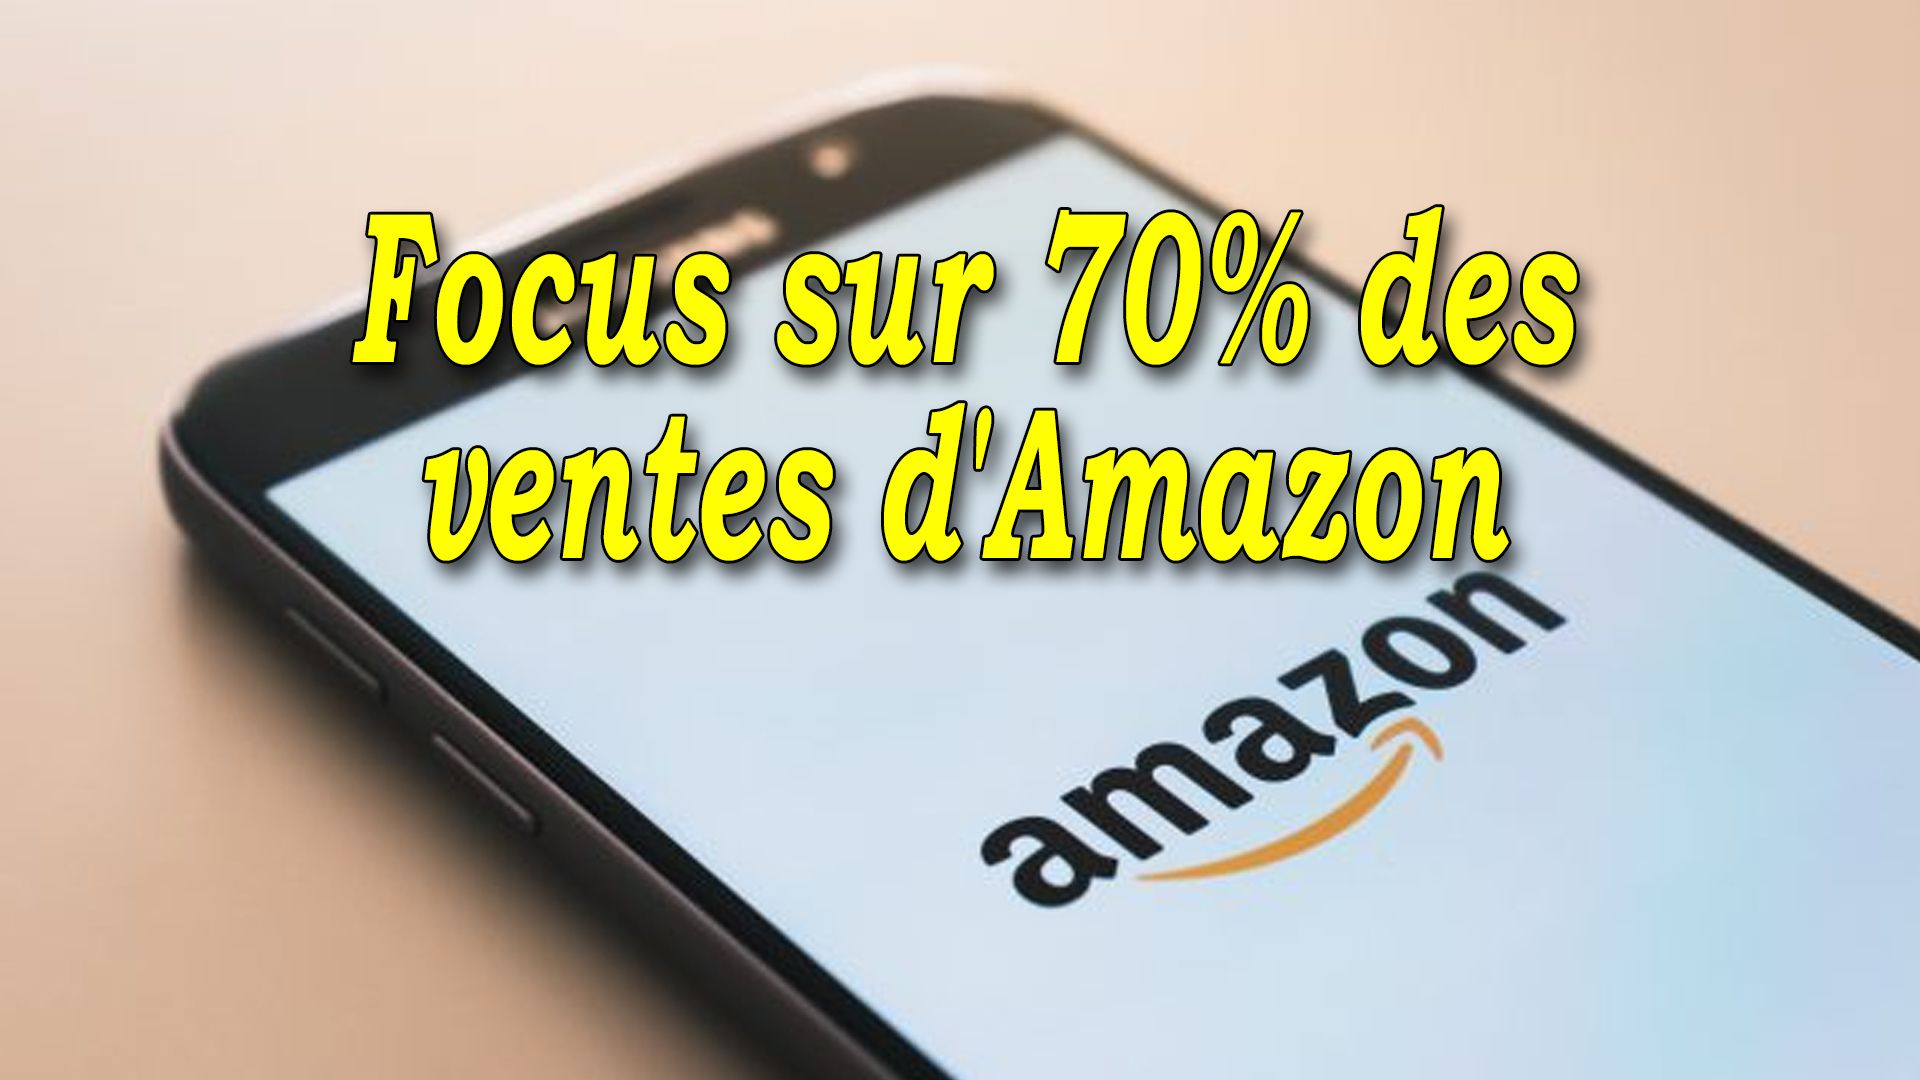 Focus sur 70% des ventes d'Amazon #GrowthHacking #WebMarketing #FormationGrowthHacking #CentreDeFormationFrance #TunnelAARRR #AARRR #SocialMedia #CommunityManagement #SEO #Amazon #AmazonSEO